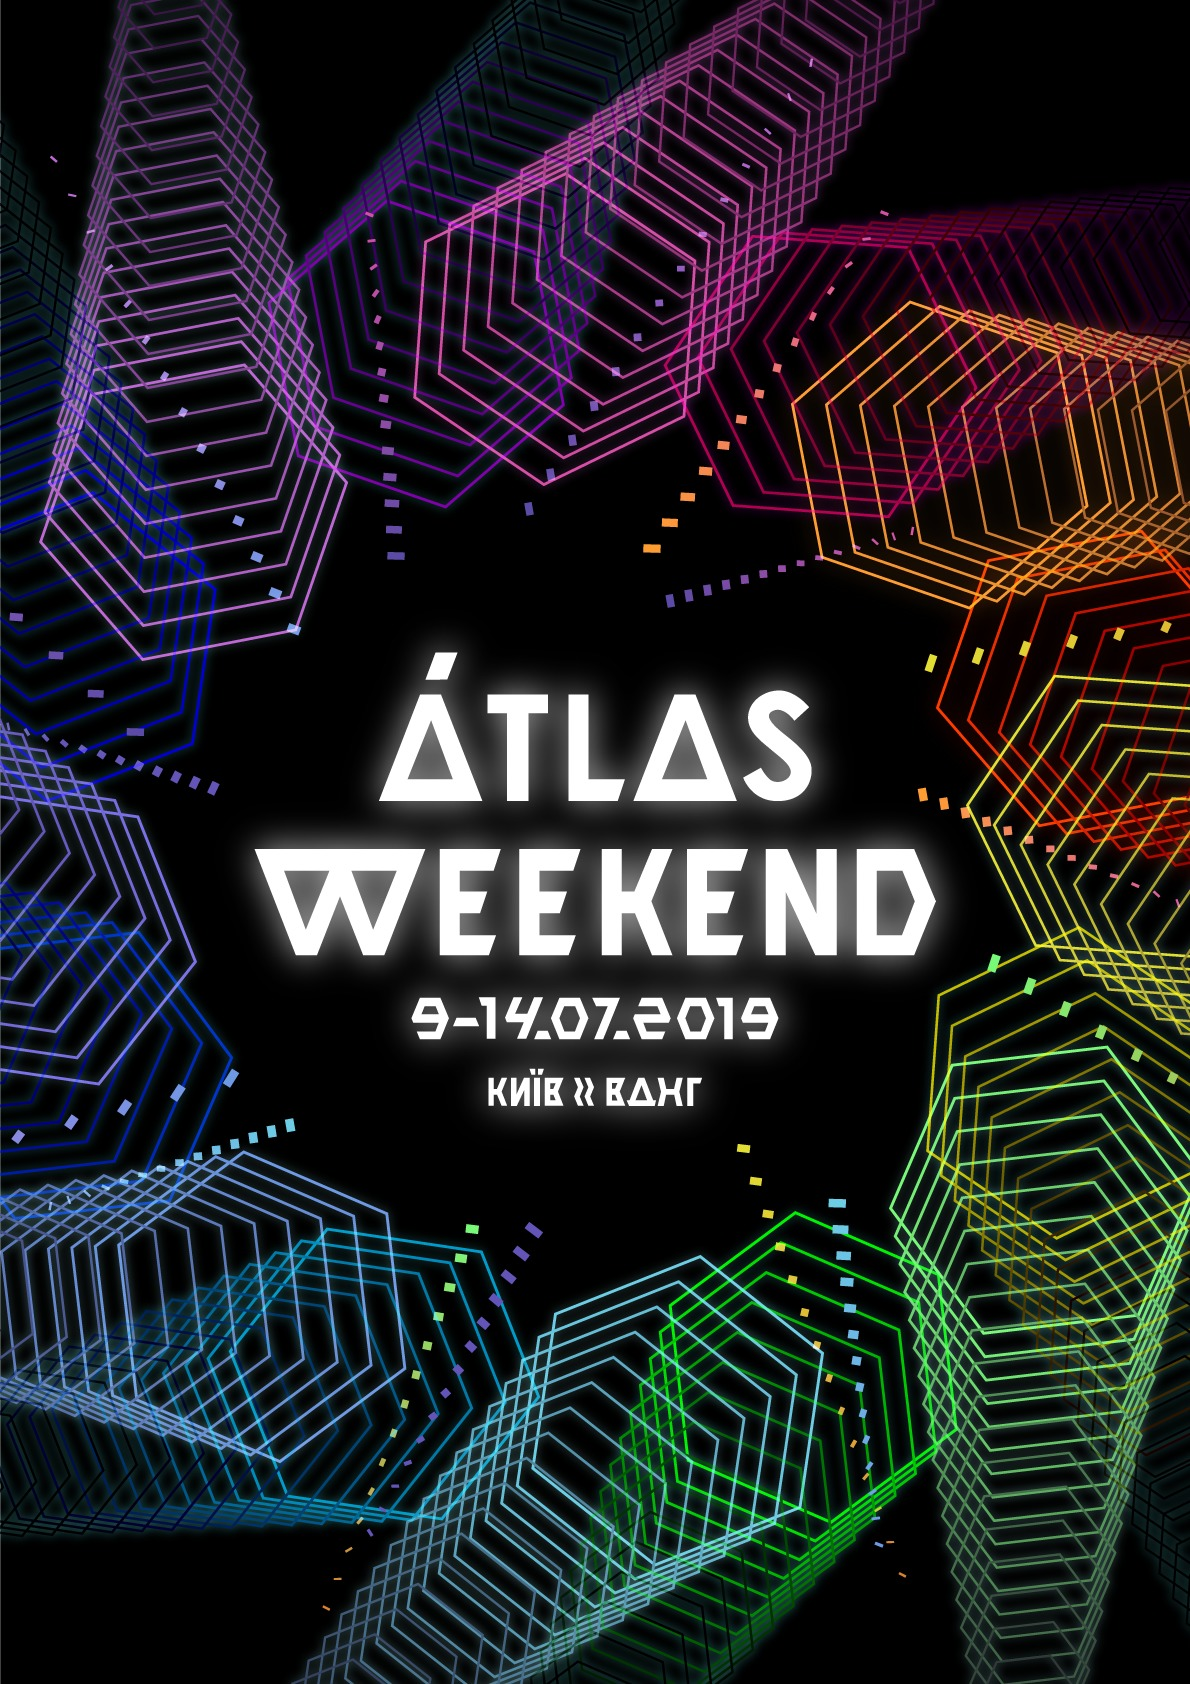 Atlas Weekend 2019